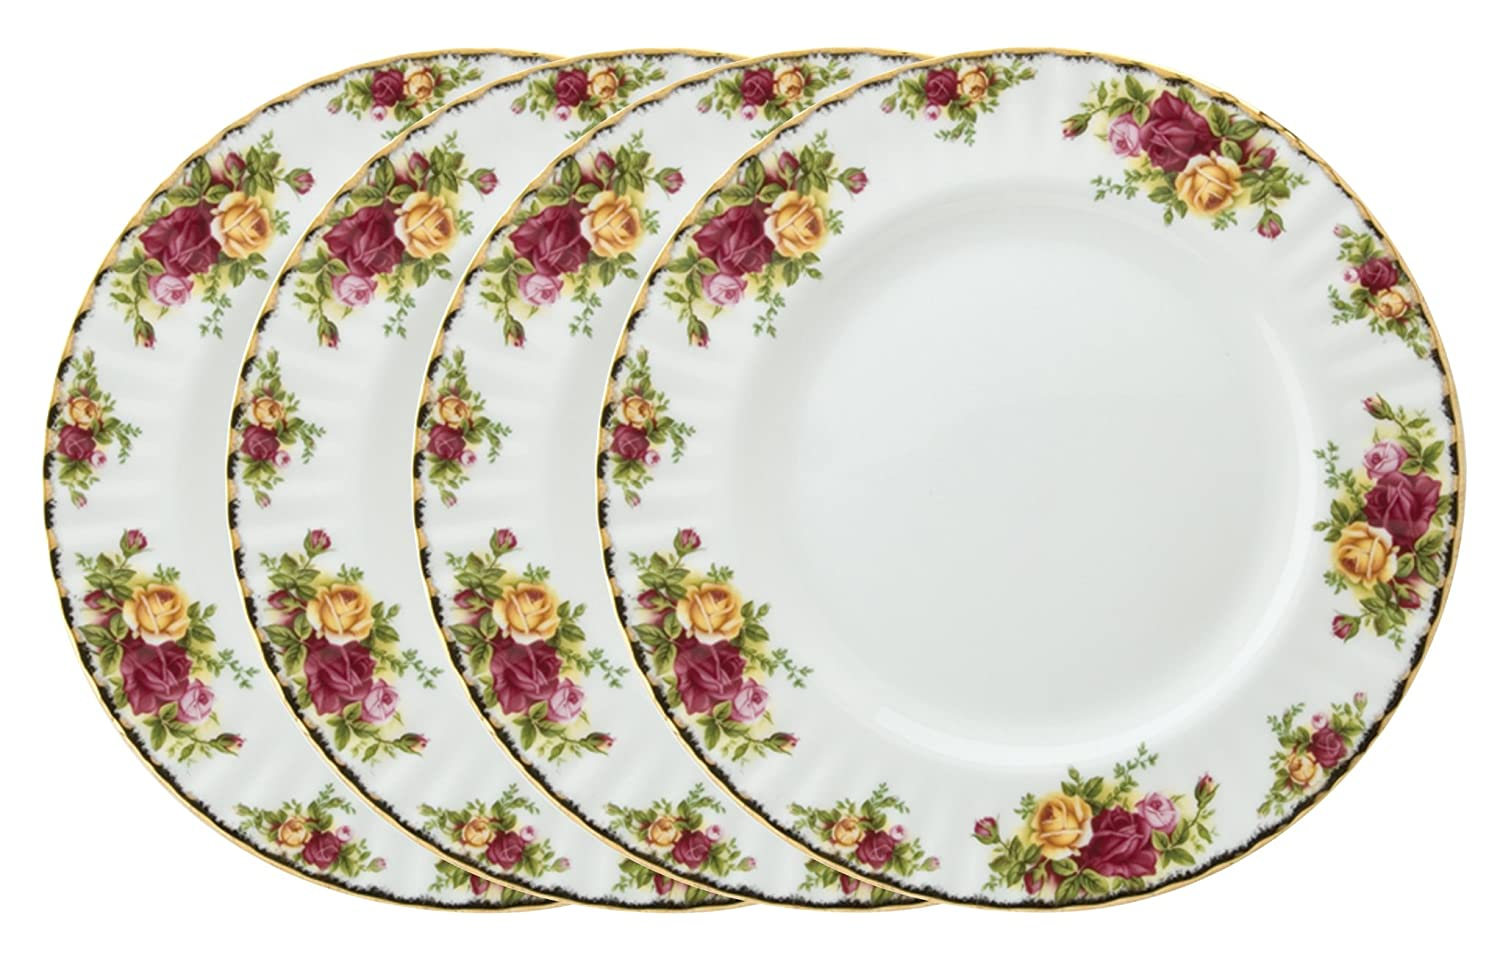 Set of 4 Royal Albert Old Country Roses Plates 27cm